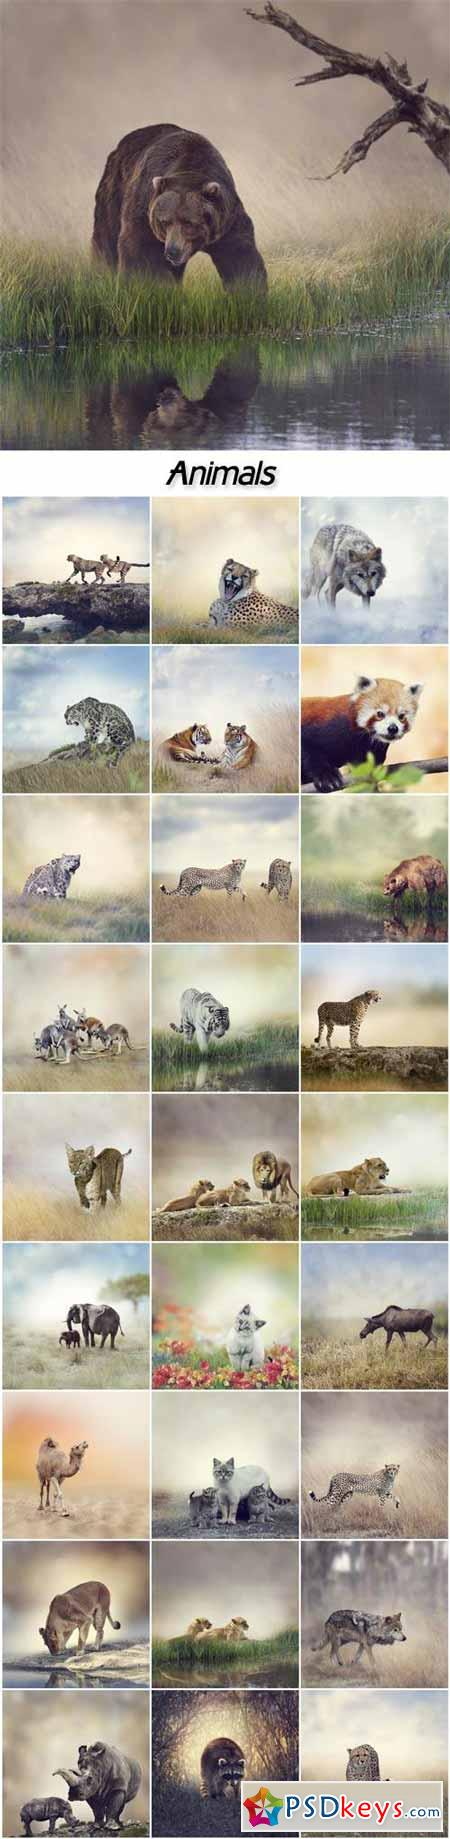 Animals, leopard, wolf, bear, elephant, camel, rhinoceros